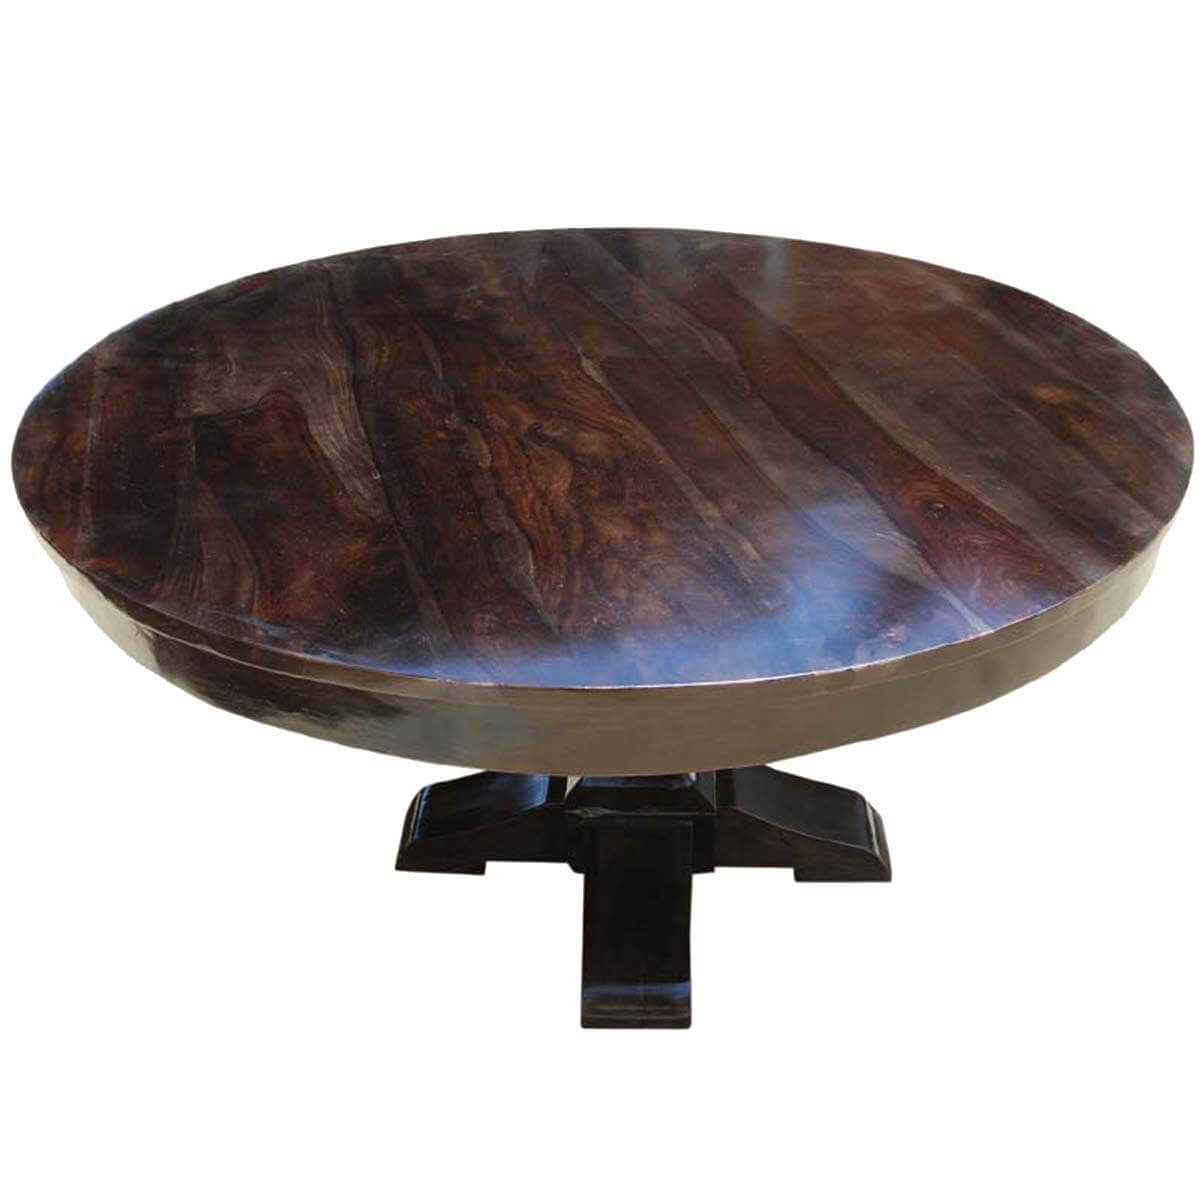 Round rustic solid wood dining table pedestal style for Solid wood round dining room table